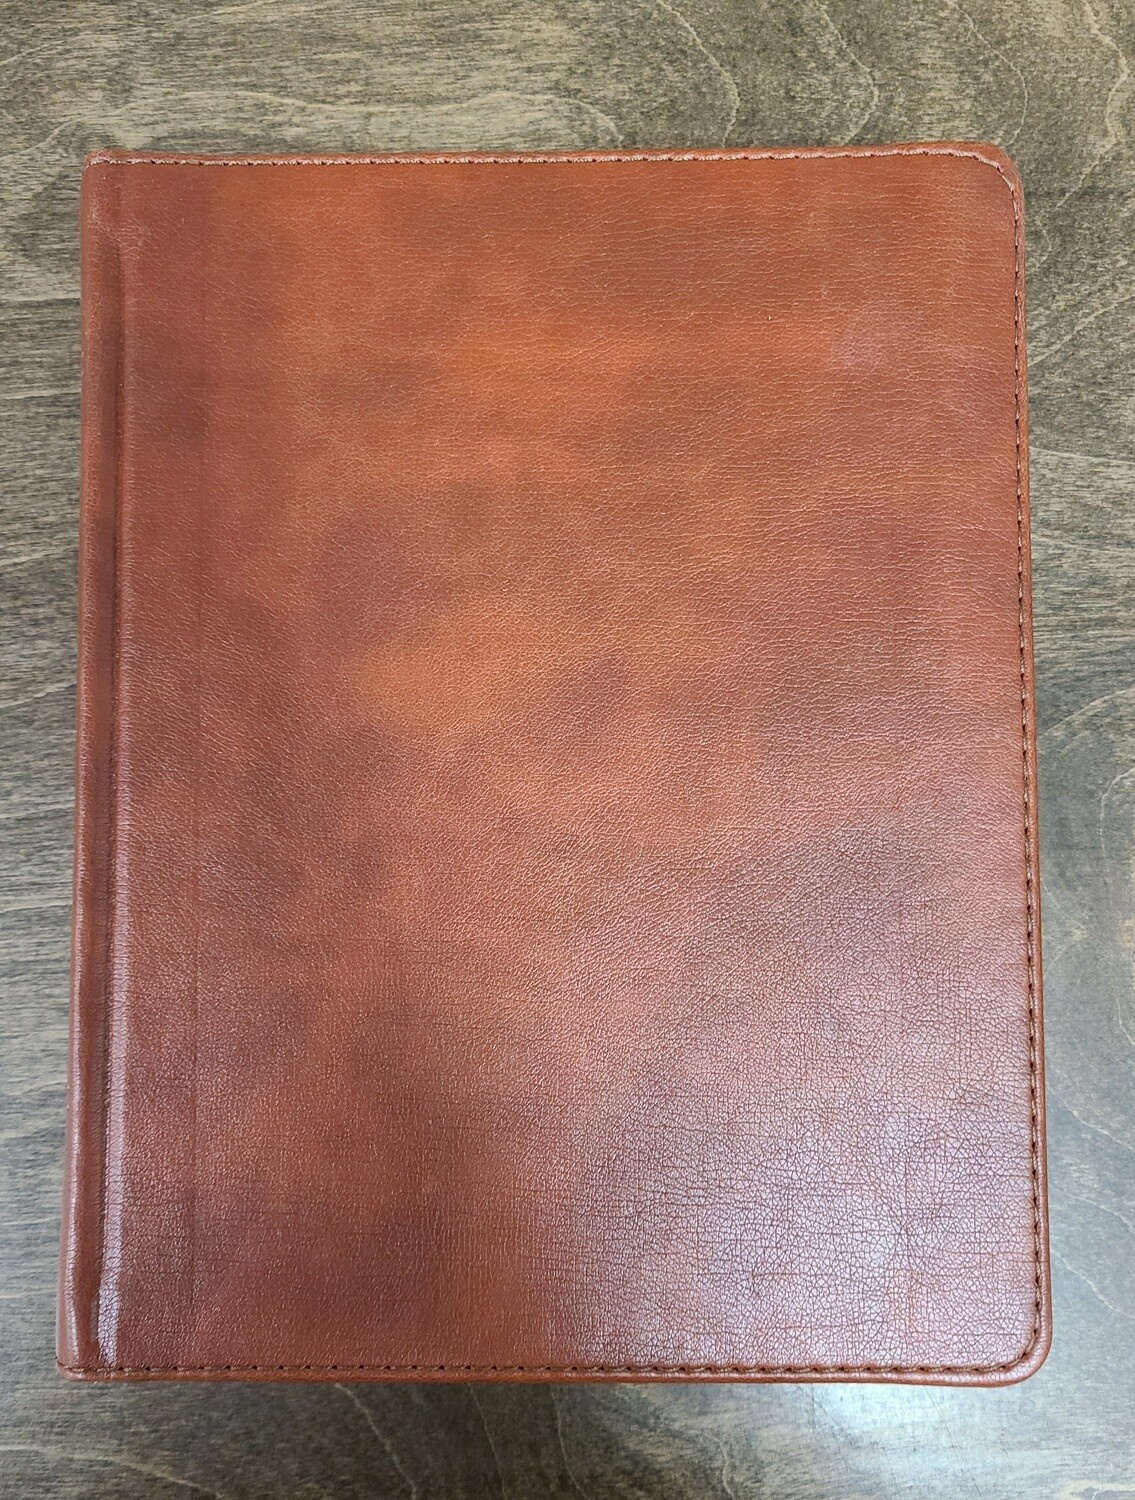 HCSB Illustrator's Notetaking Bible - British Tan Soft Leather-Look